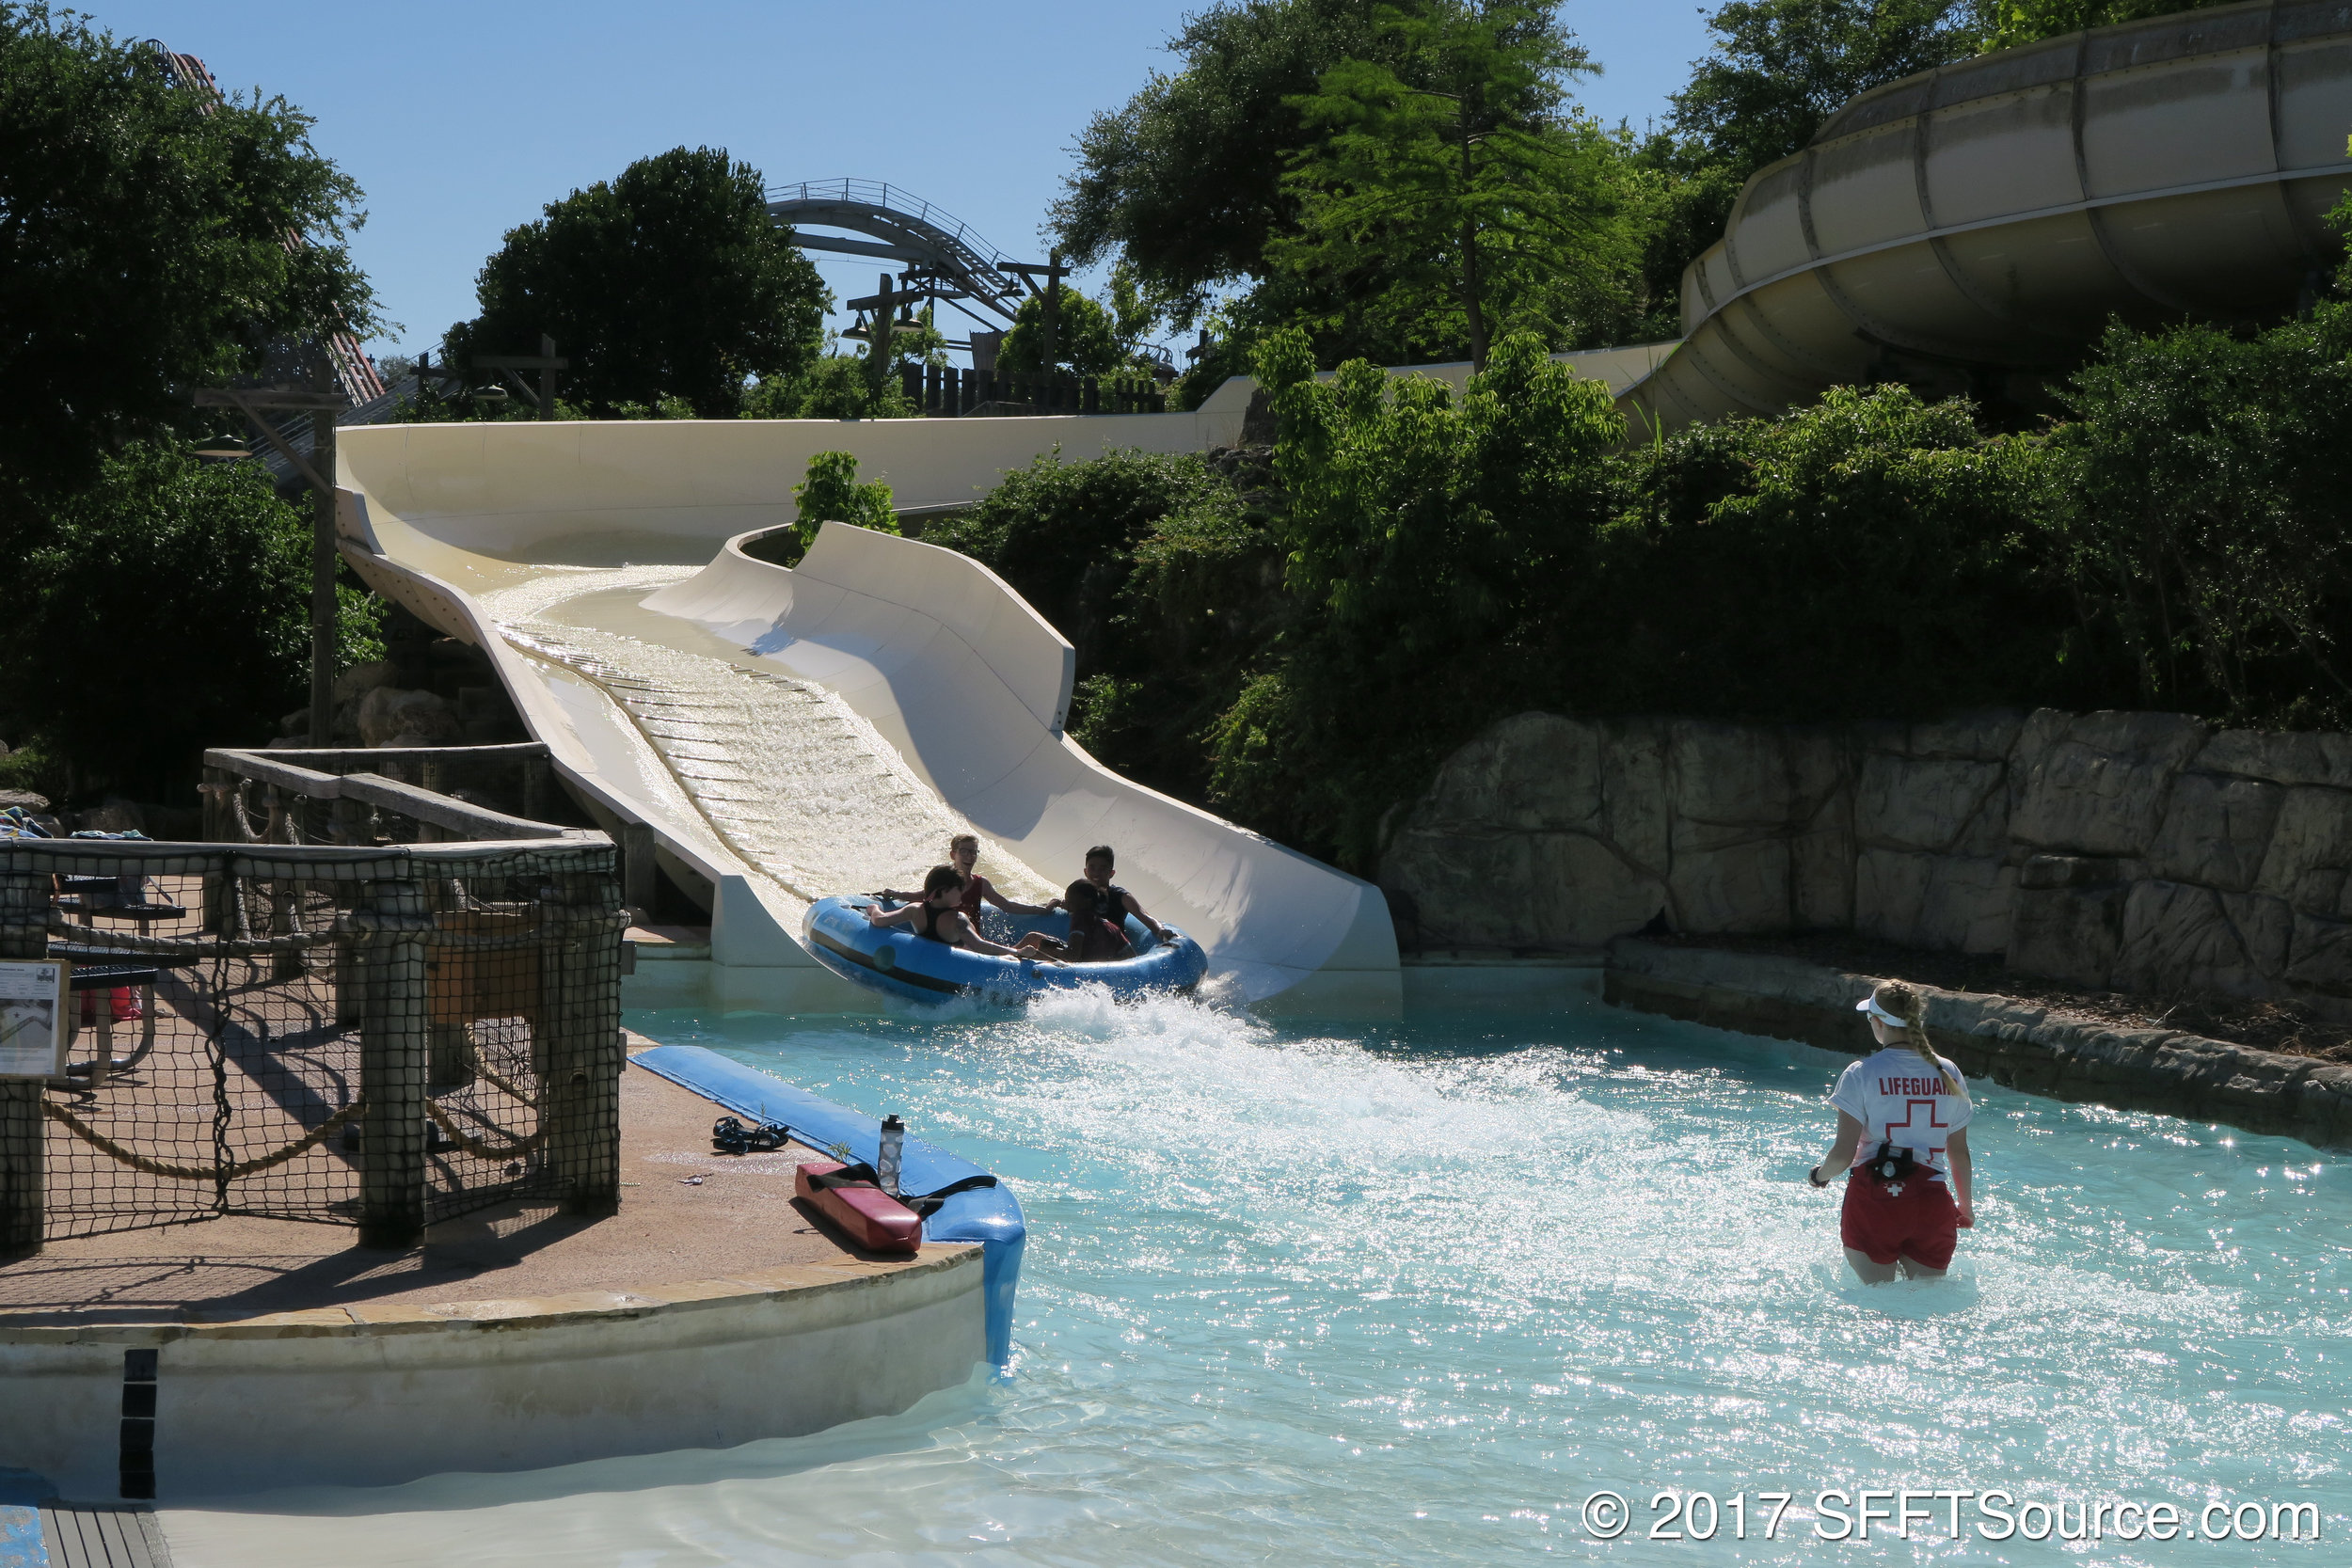 Texas Tumble is an open tube water slide.